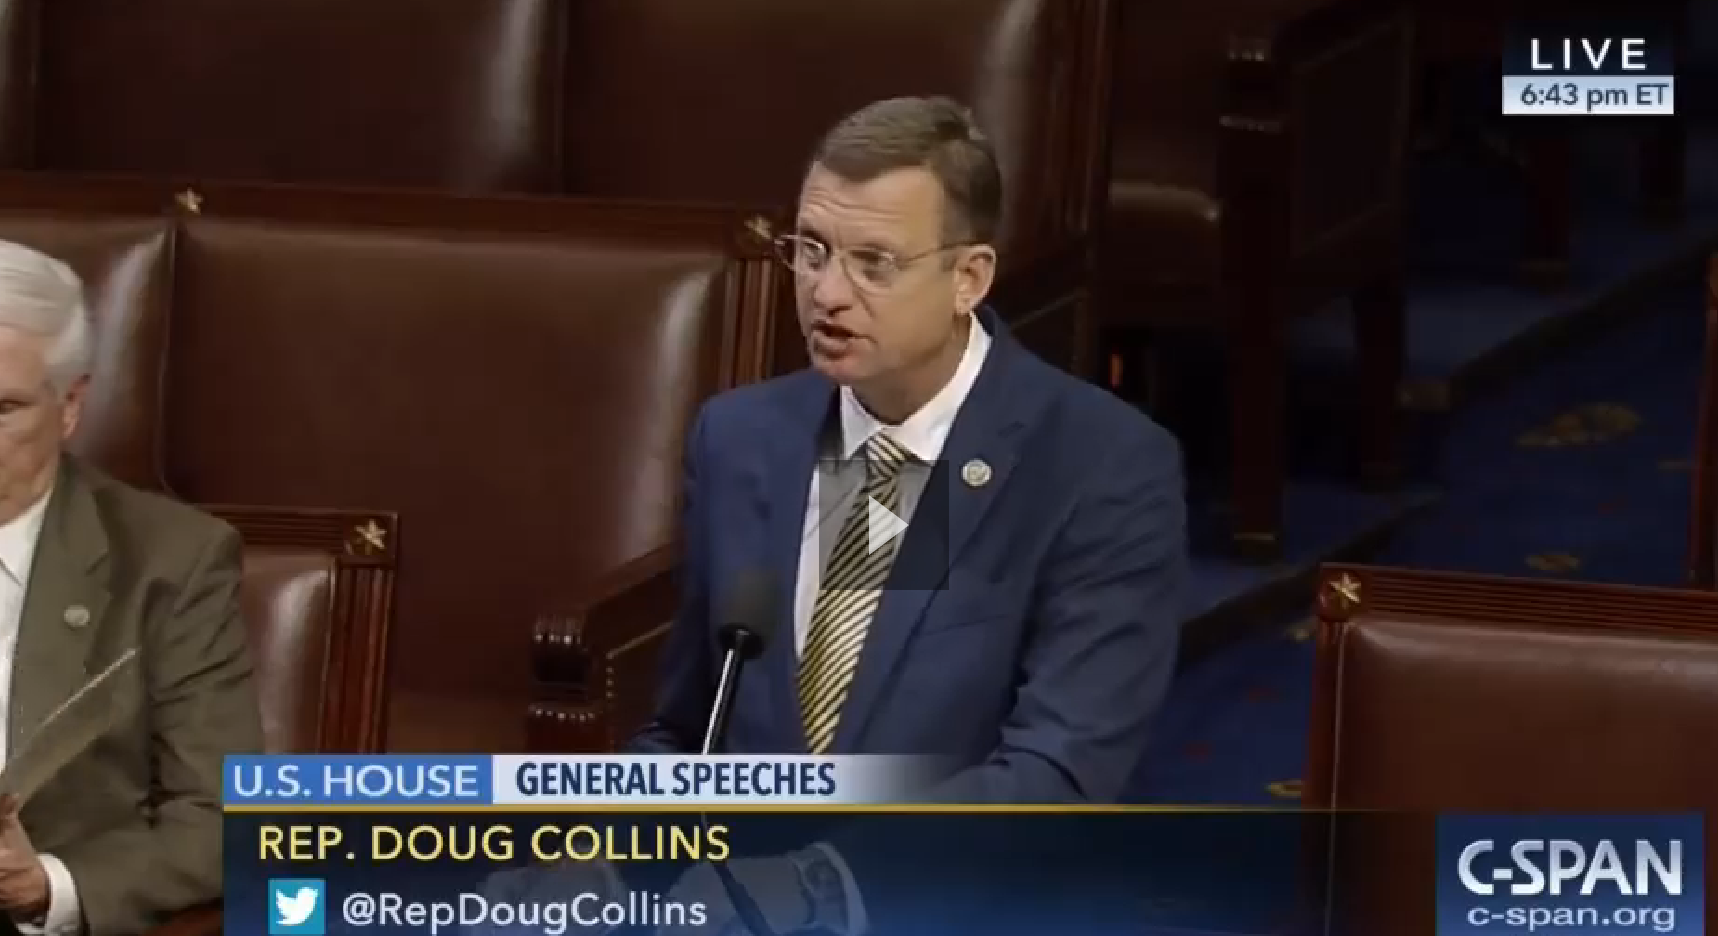 Rep. Doug Collins House floor speech, March 1, 2017